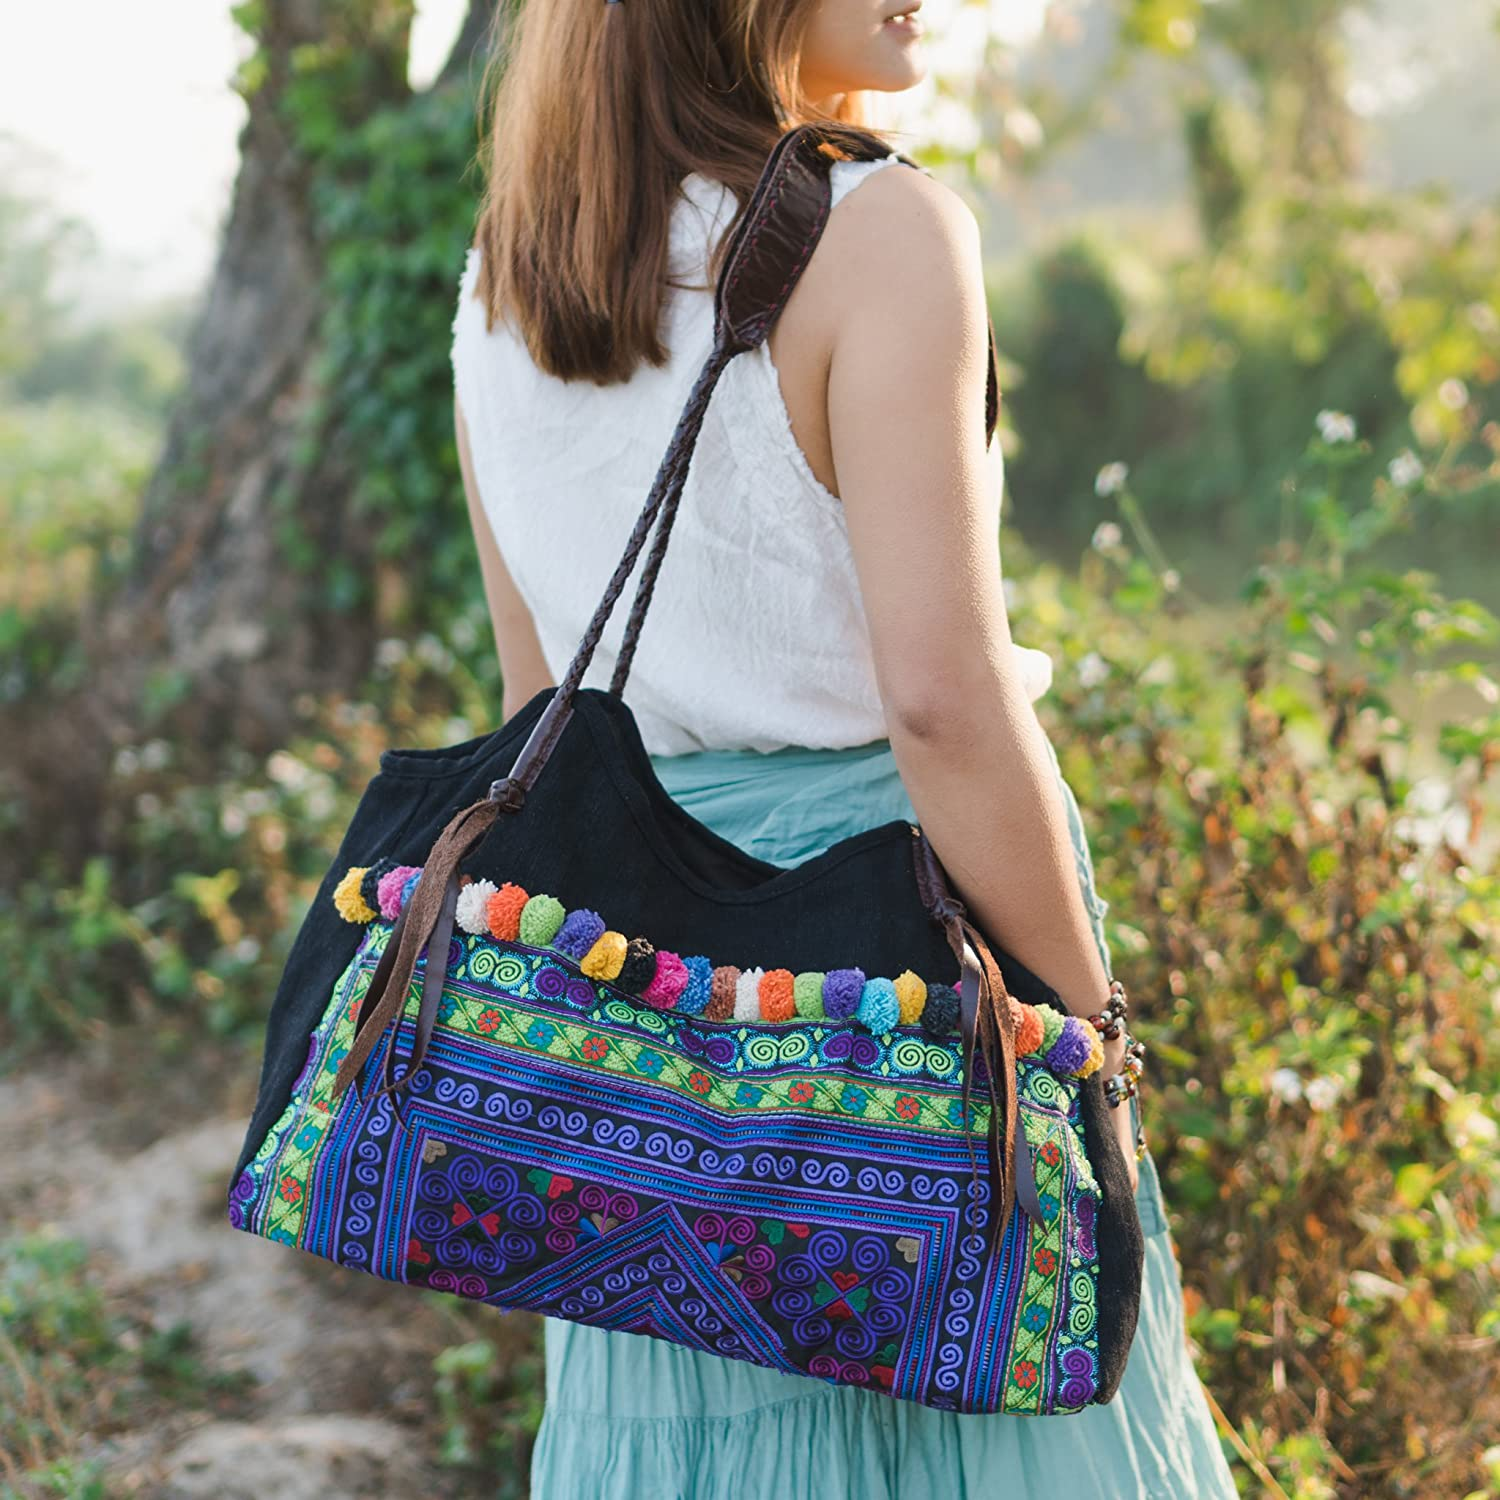 Changnoi Purple Diamond Max 46% OFF Tote Bag Pom Hmong with Embroidered low-pricing